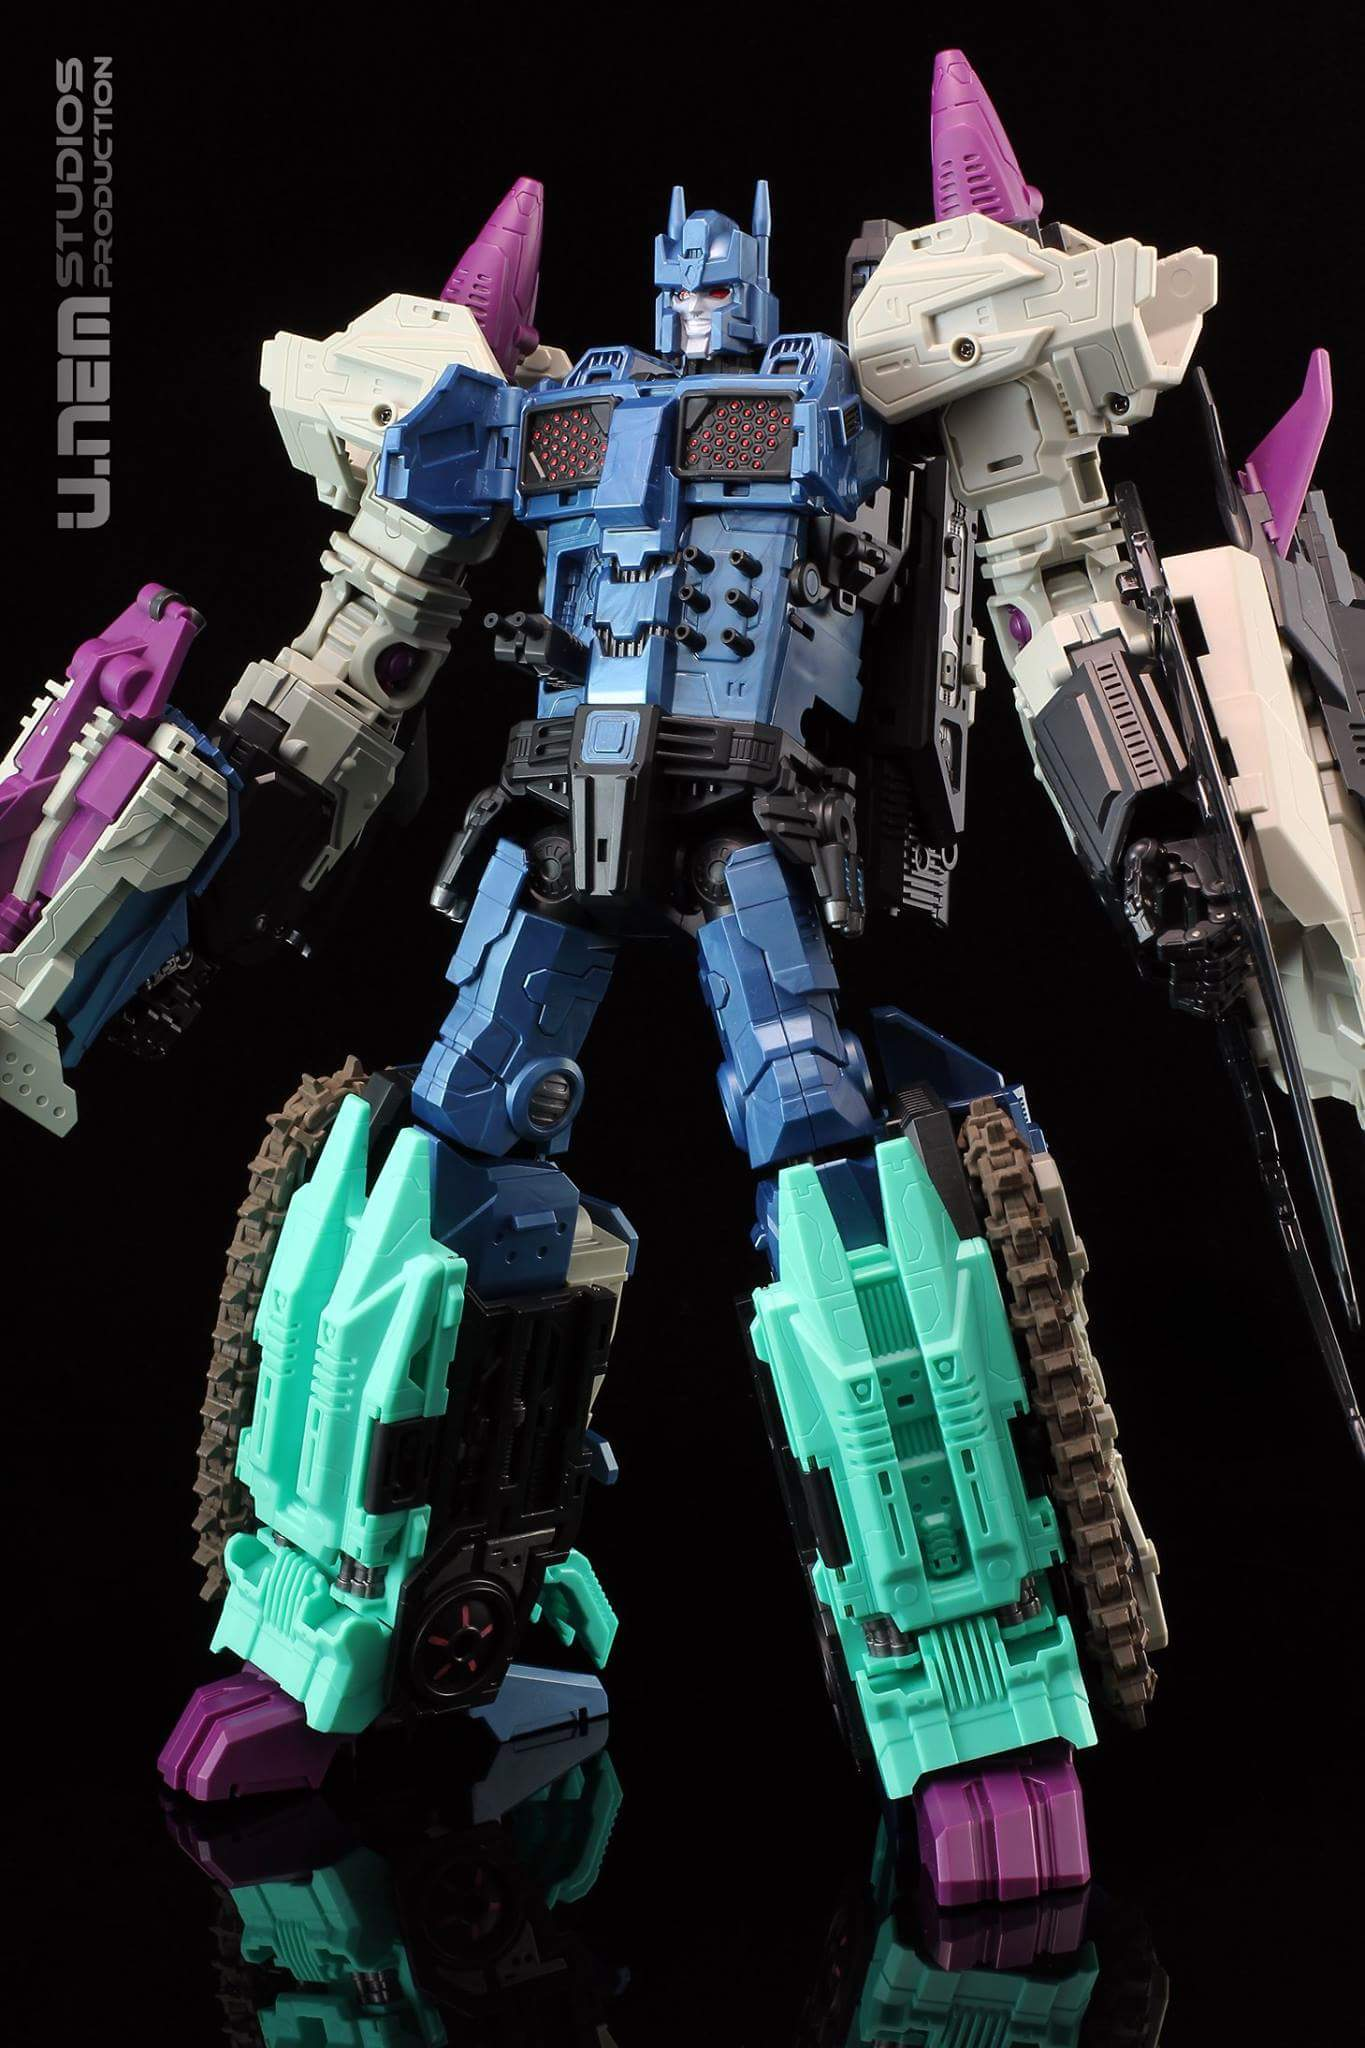 [Mastermind Creations] Produit Tiers - R-17 Carnifex - aka Overlord (TF Masterforce) - Page 2 OMcecRAO